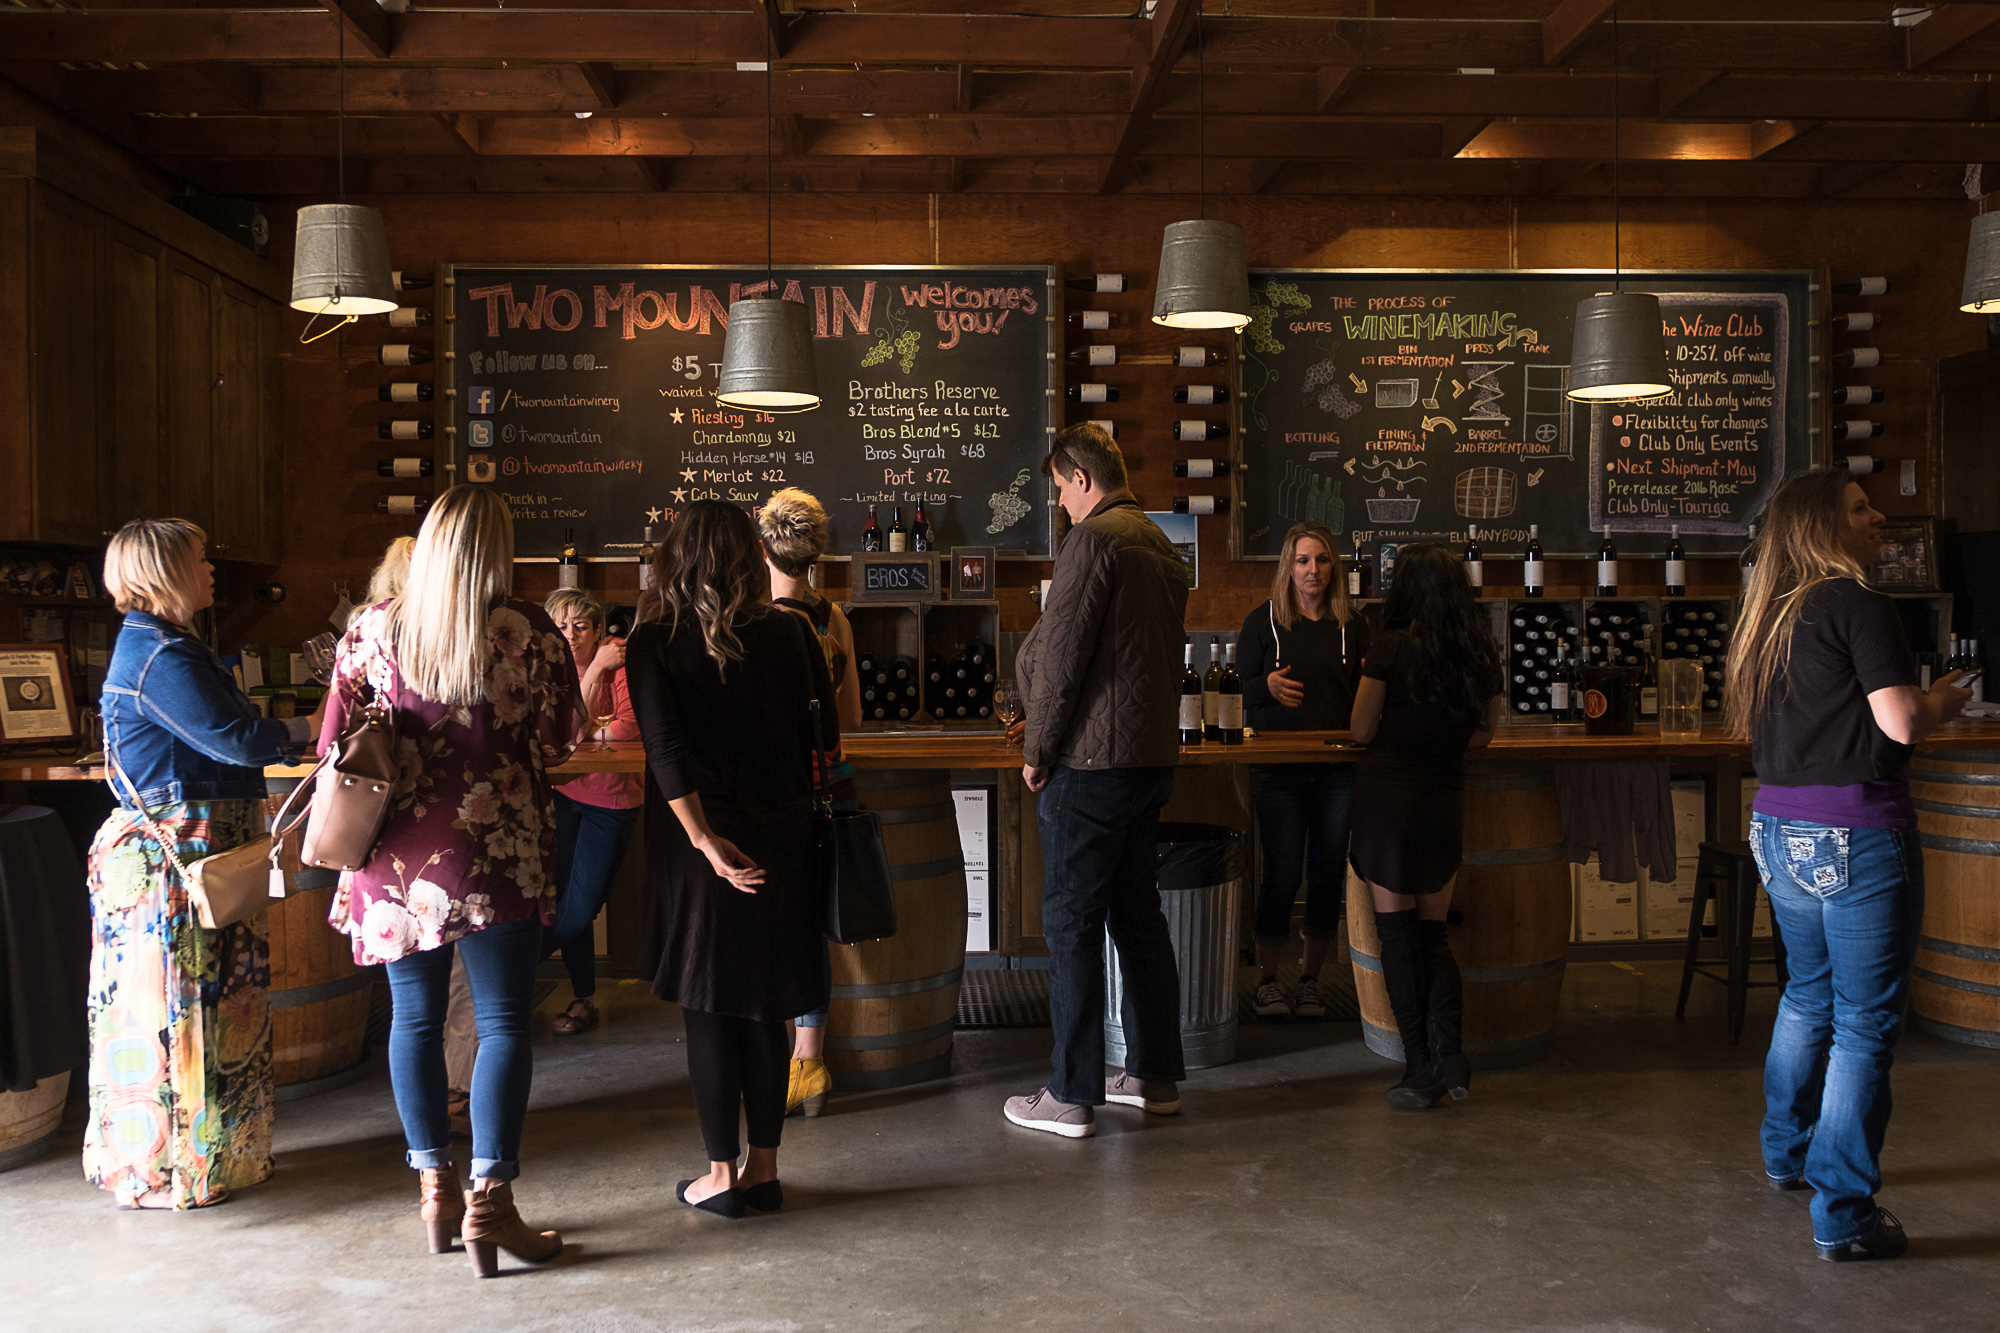 Two Mountain Winery (Image: Paola Thomas/Seattle Refined)